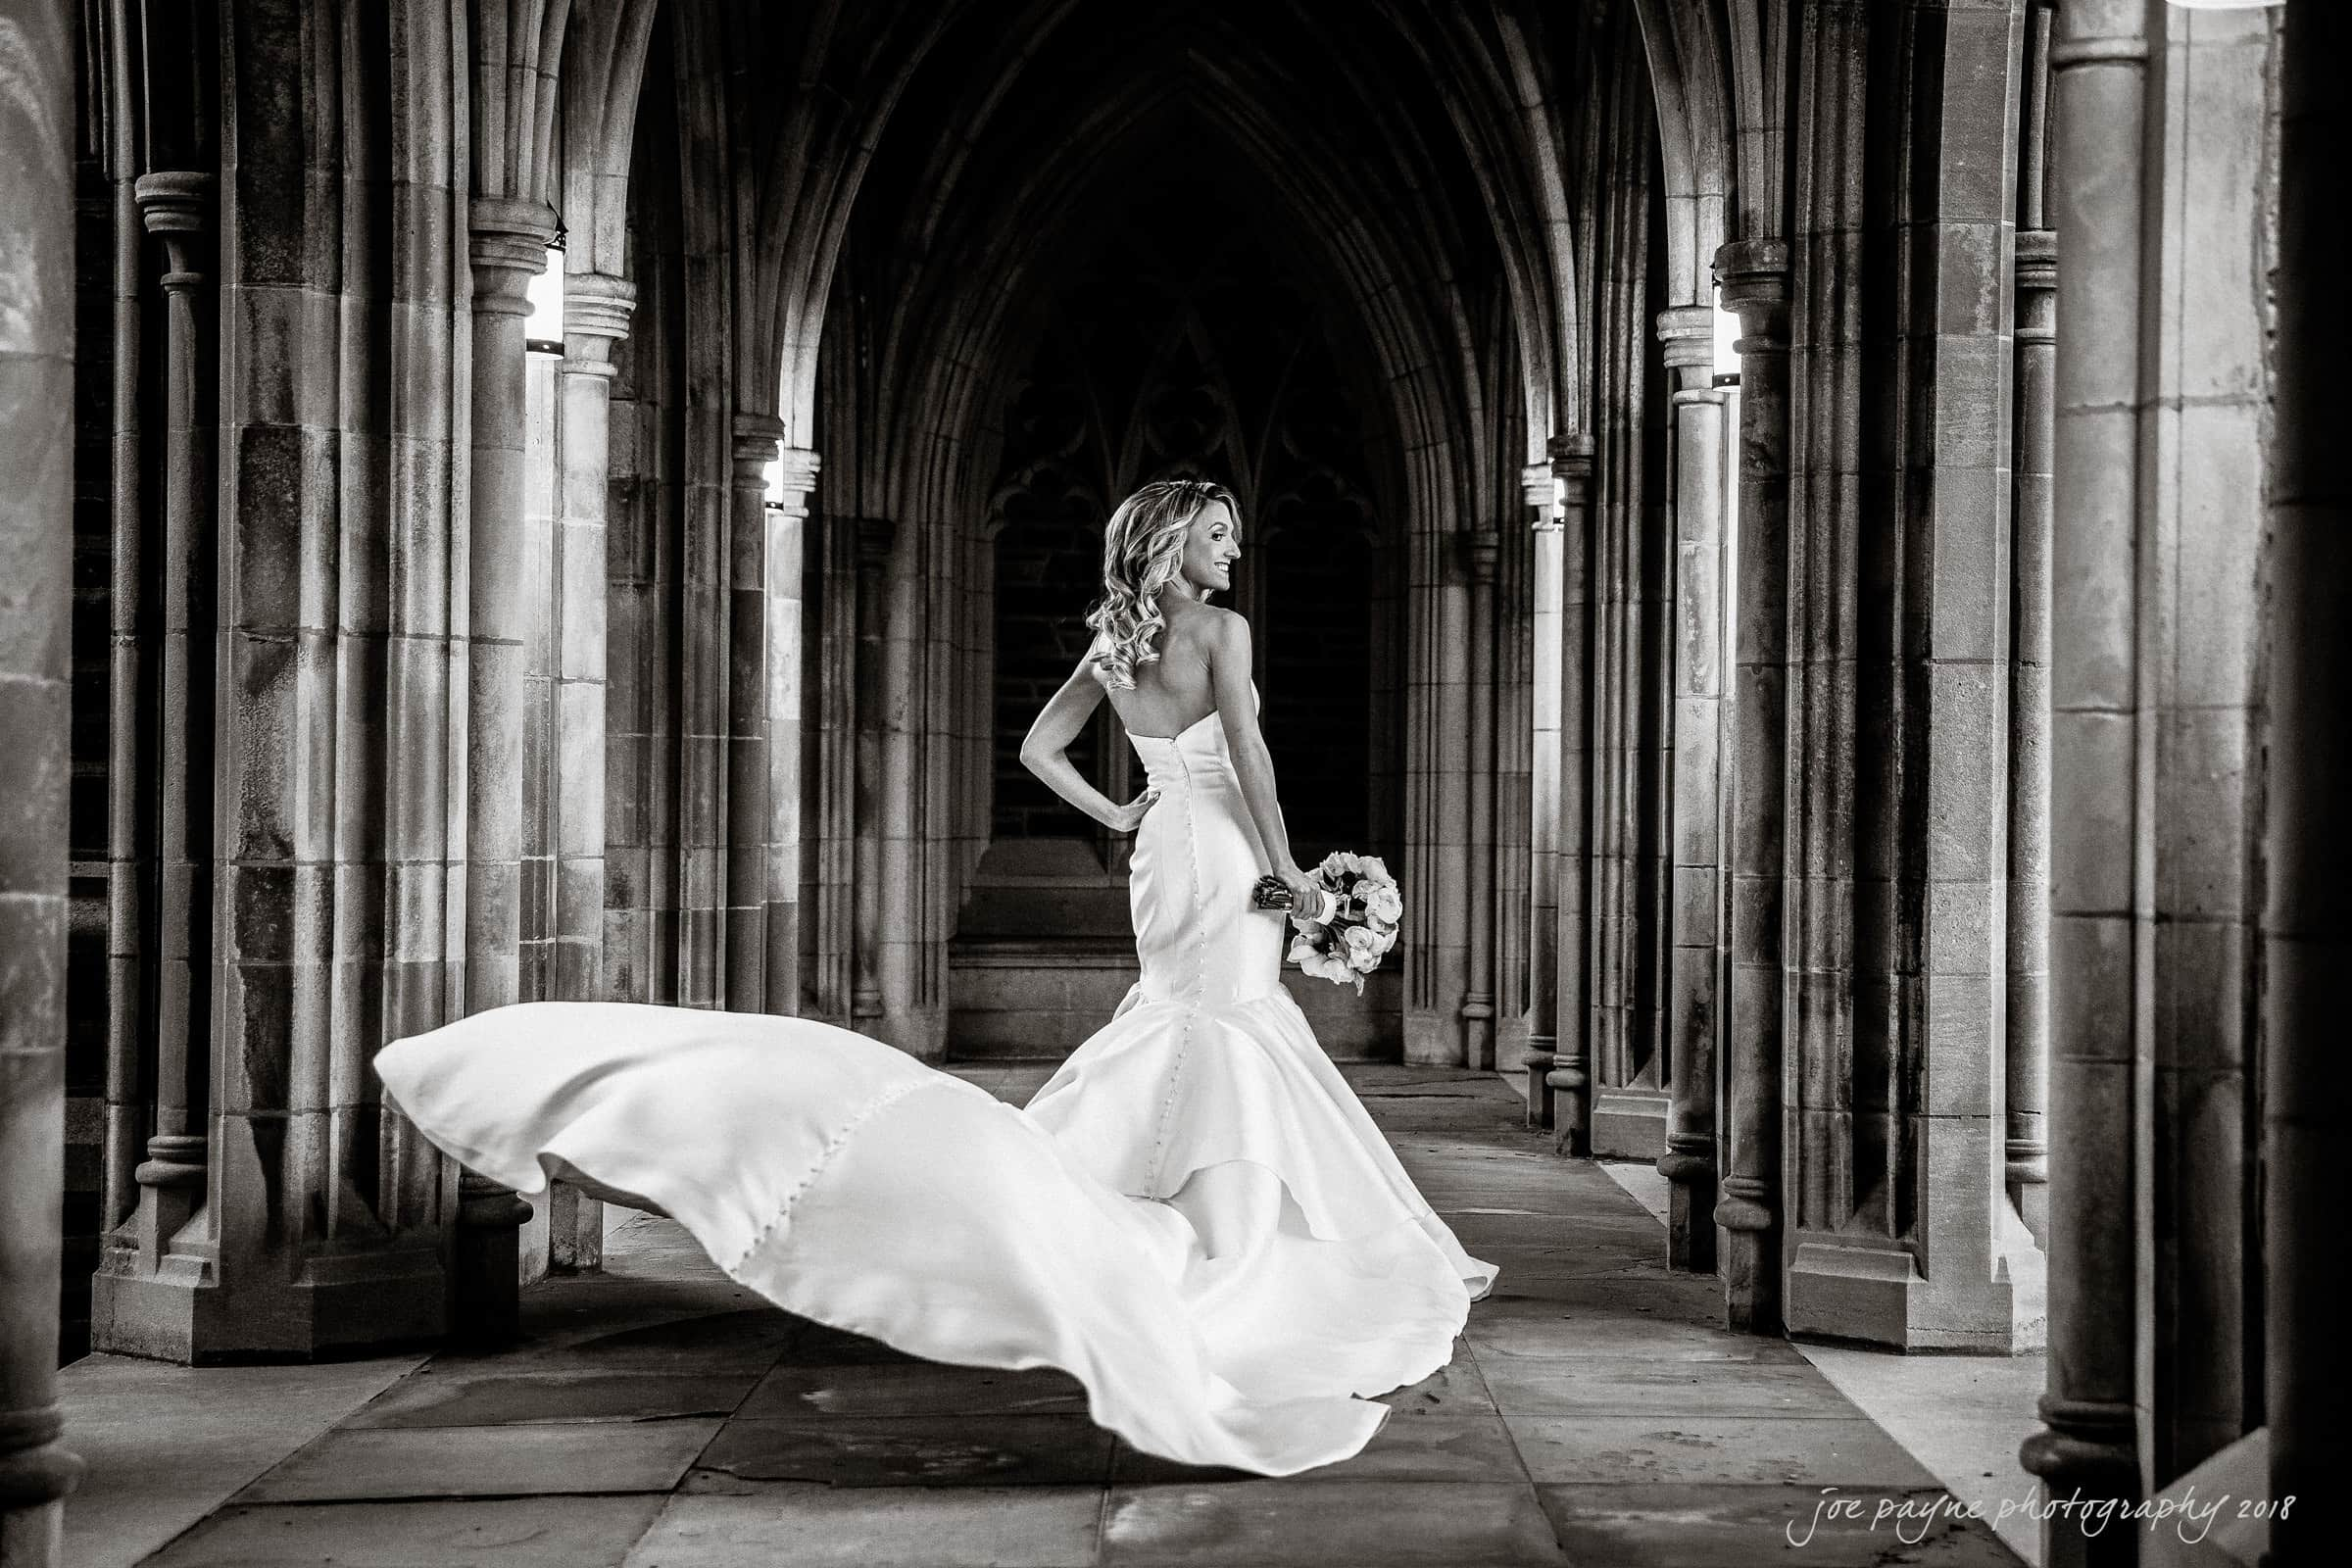 21c, duke chapel & cookery wedding photography – brandy & gabe